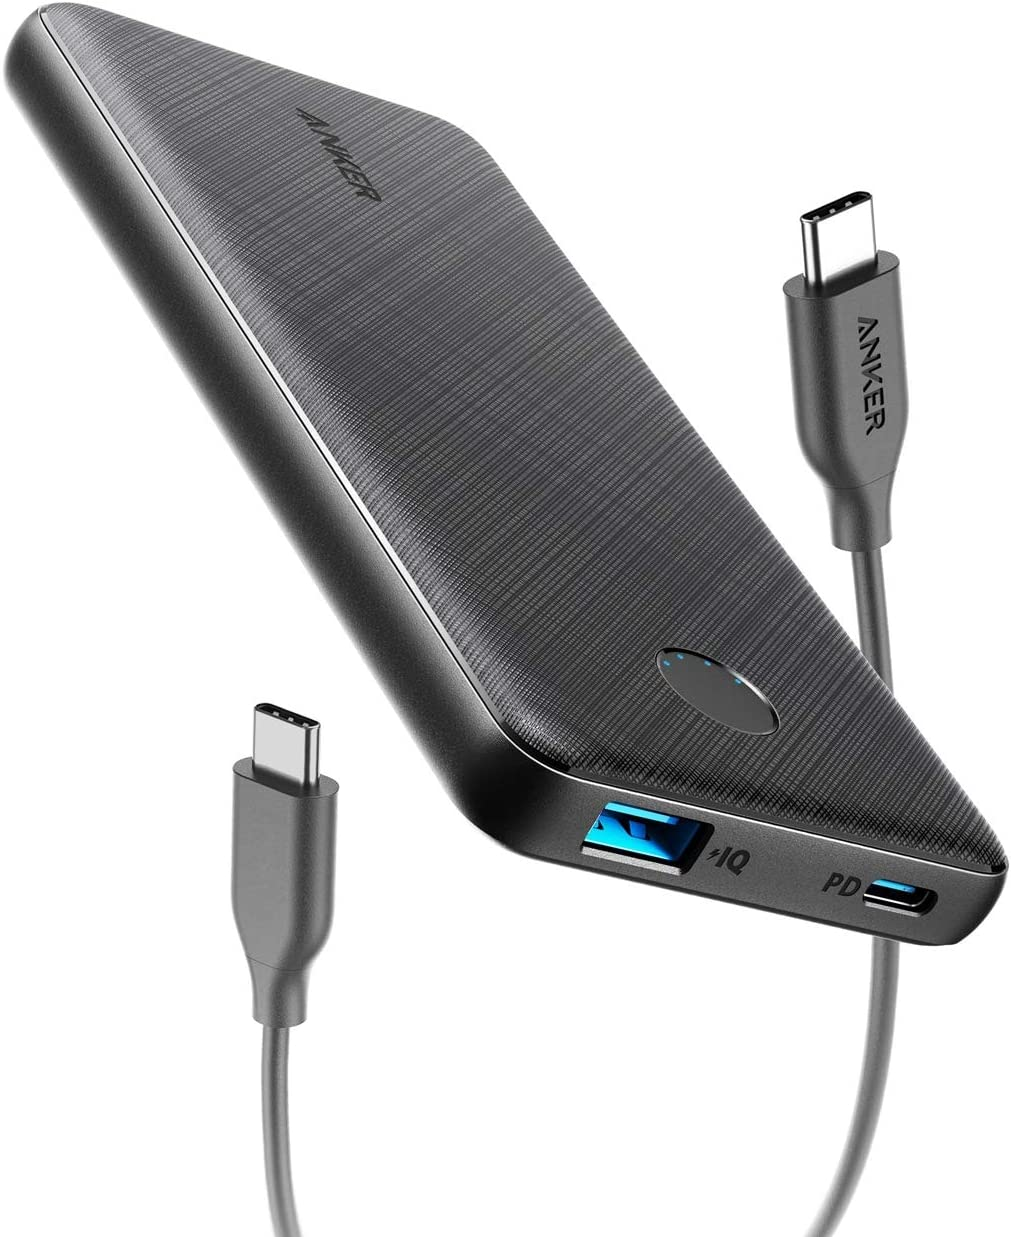 Anker PowerCore Slim 10000 PD, USB-C Power Bank (18W), 10000mAh Power Delivery Portable Charger for iPhone 8/8+/X/XS/XR/XS Max, Samsung S10, Pixel 3/3XL, iPad Pro 2018, and More (Charger Not Included)